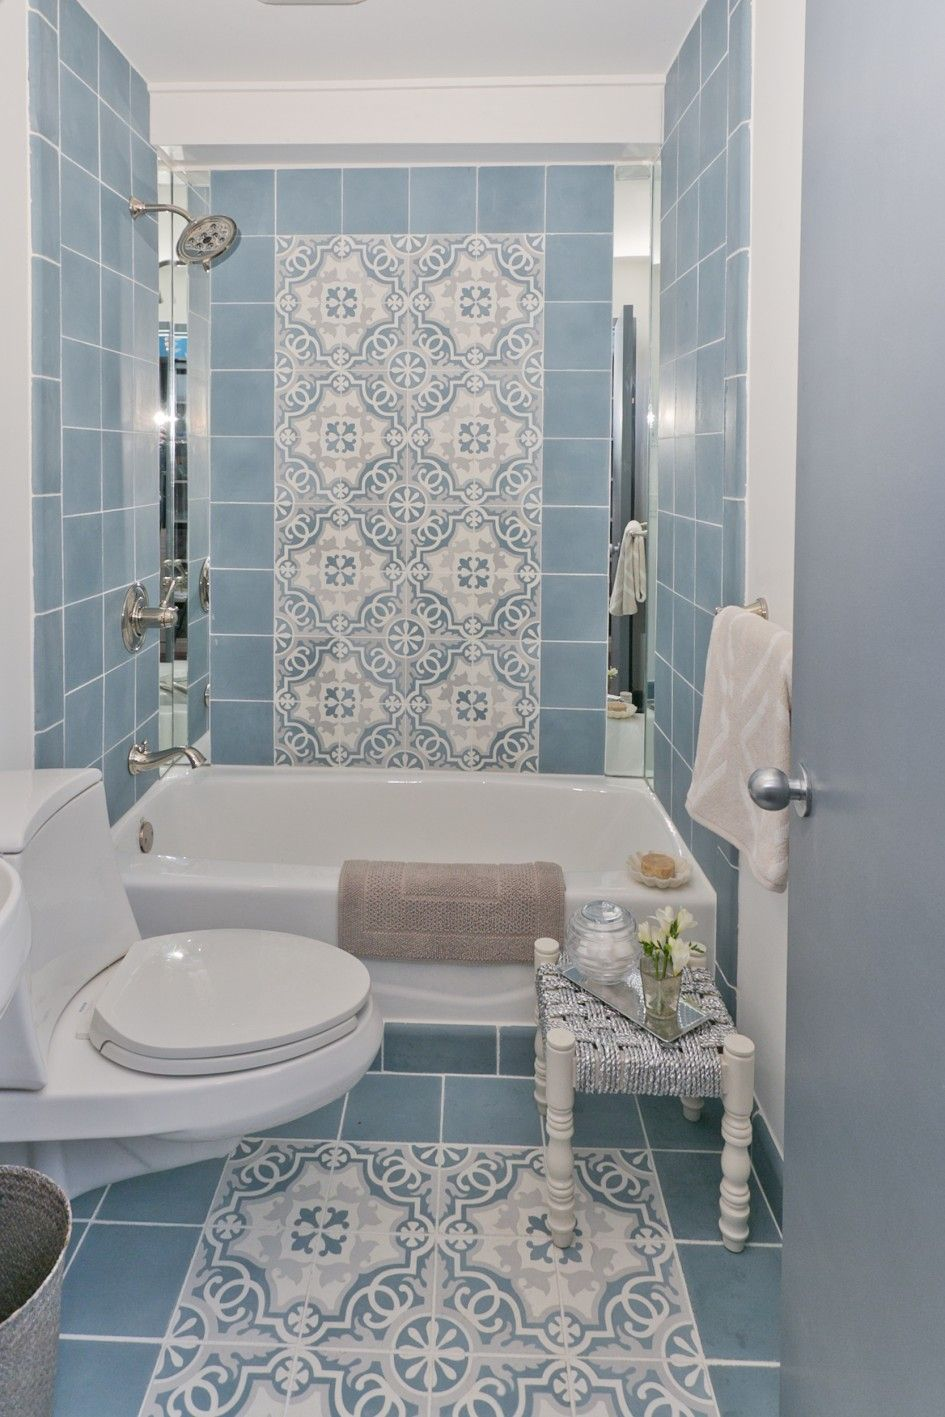 Beautiful Blue Patterned Bathroom Tiles Part - 6: Beautiful-minimalist-blue-tile-pattern-bathroom-decor